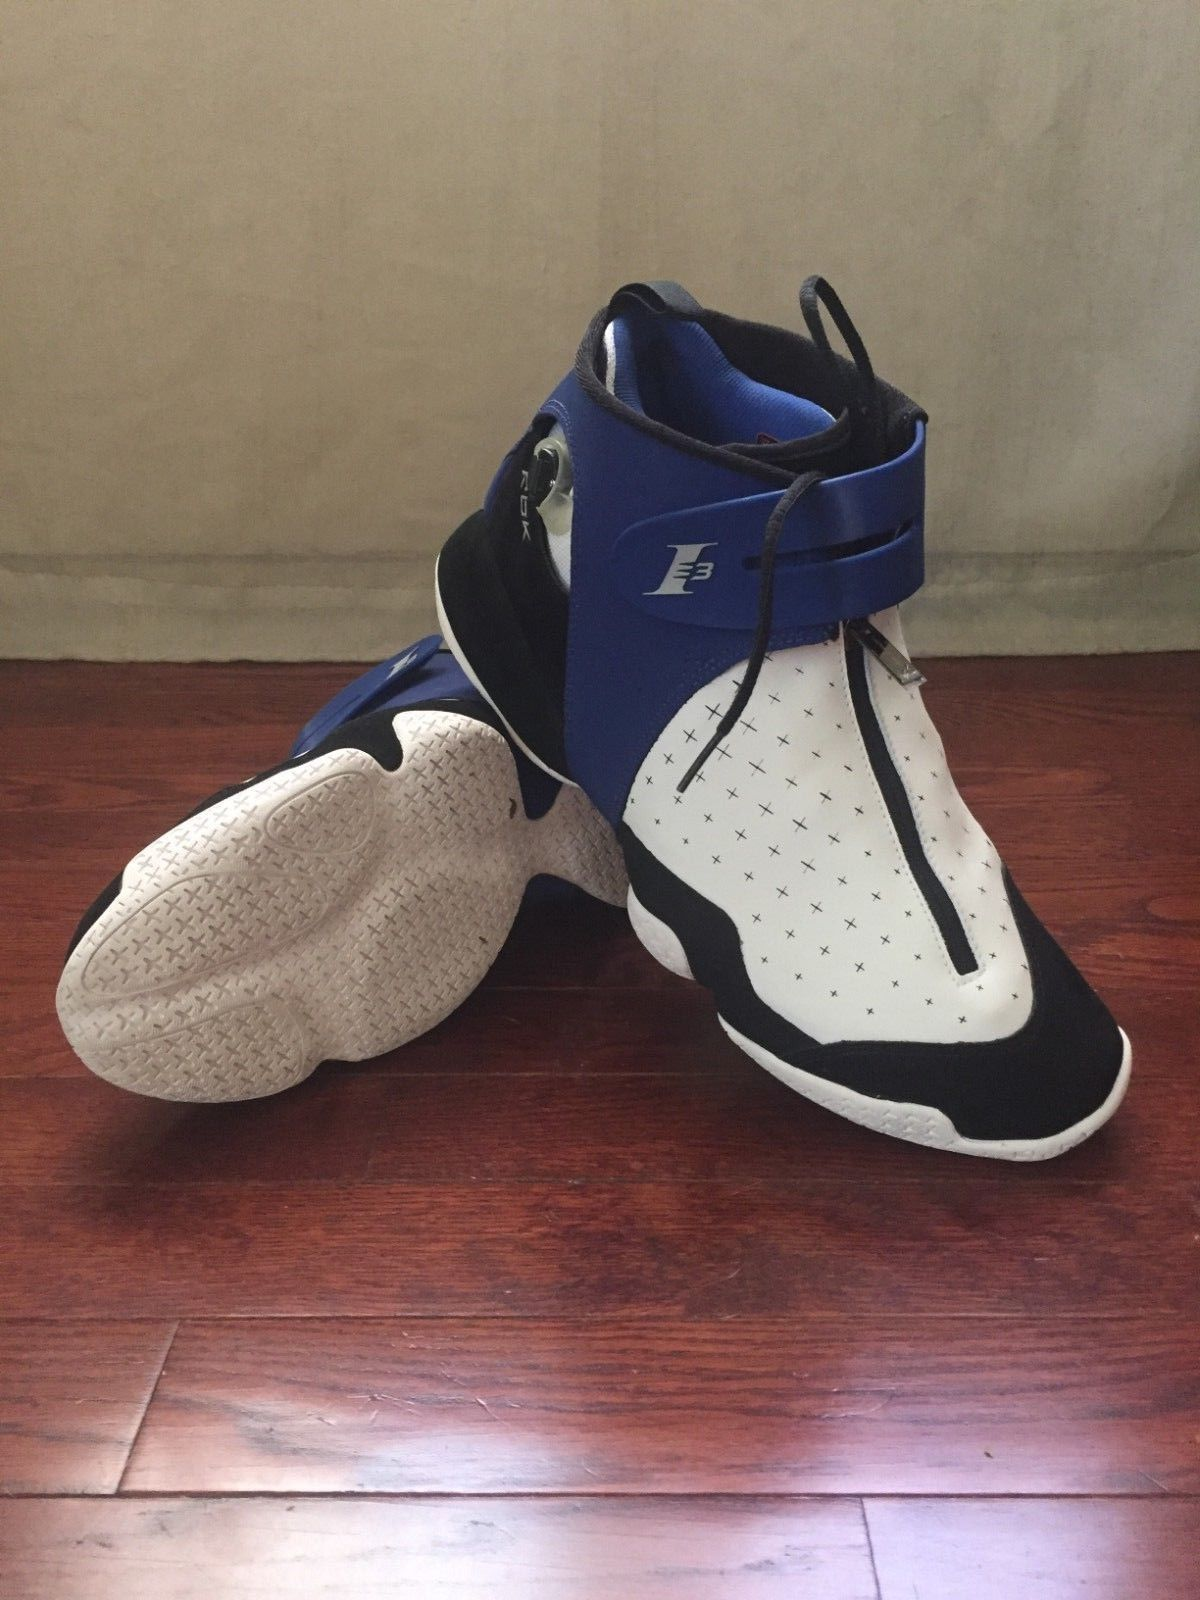 d0e120e8adaf4c Reebok Iverson Answer X 10 Pump Original Release 2006 Size 12 White Royal